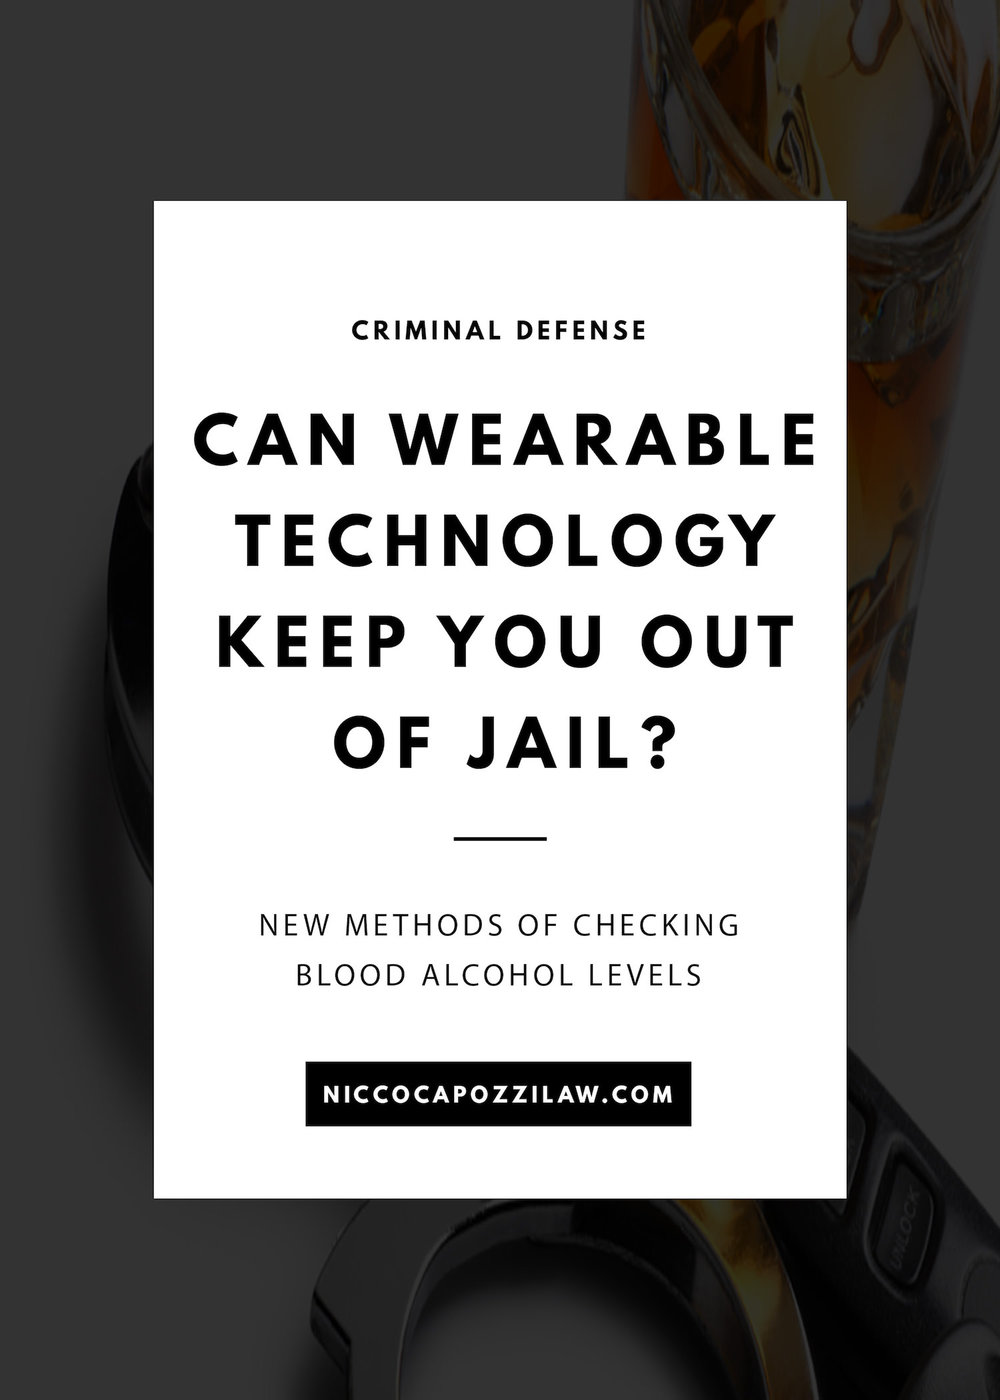 Can wearable technology keep you out of jail.jpg